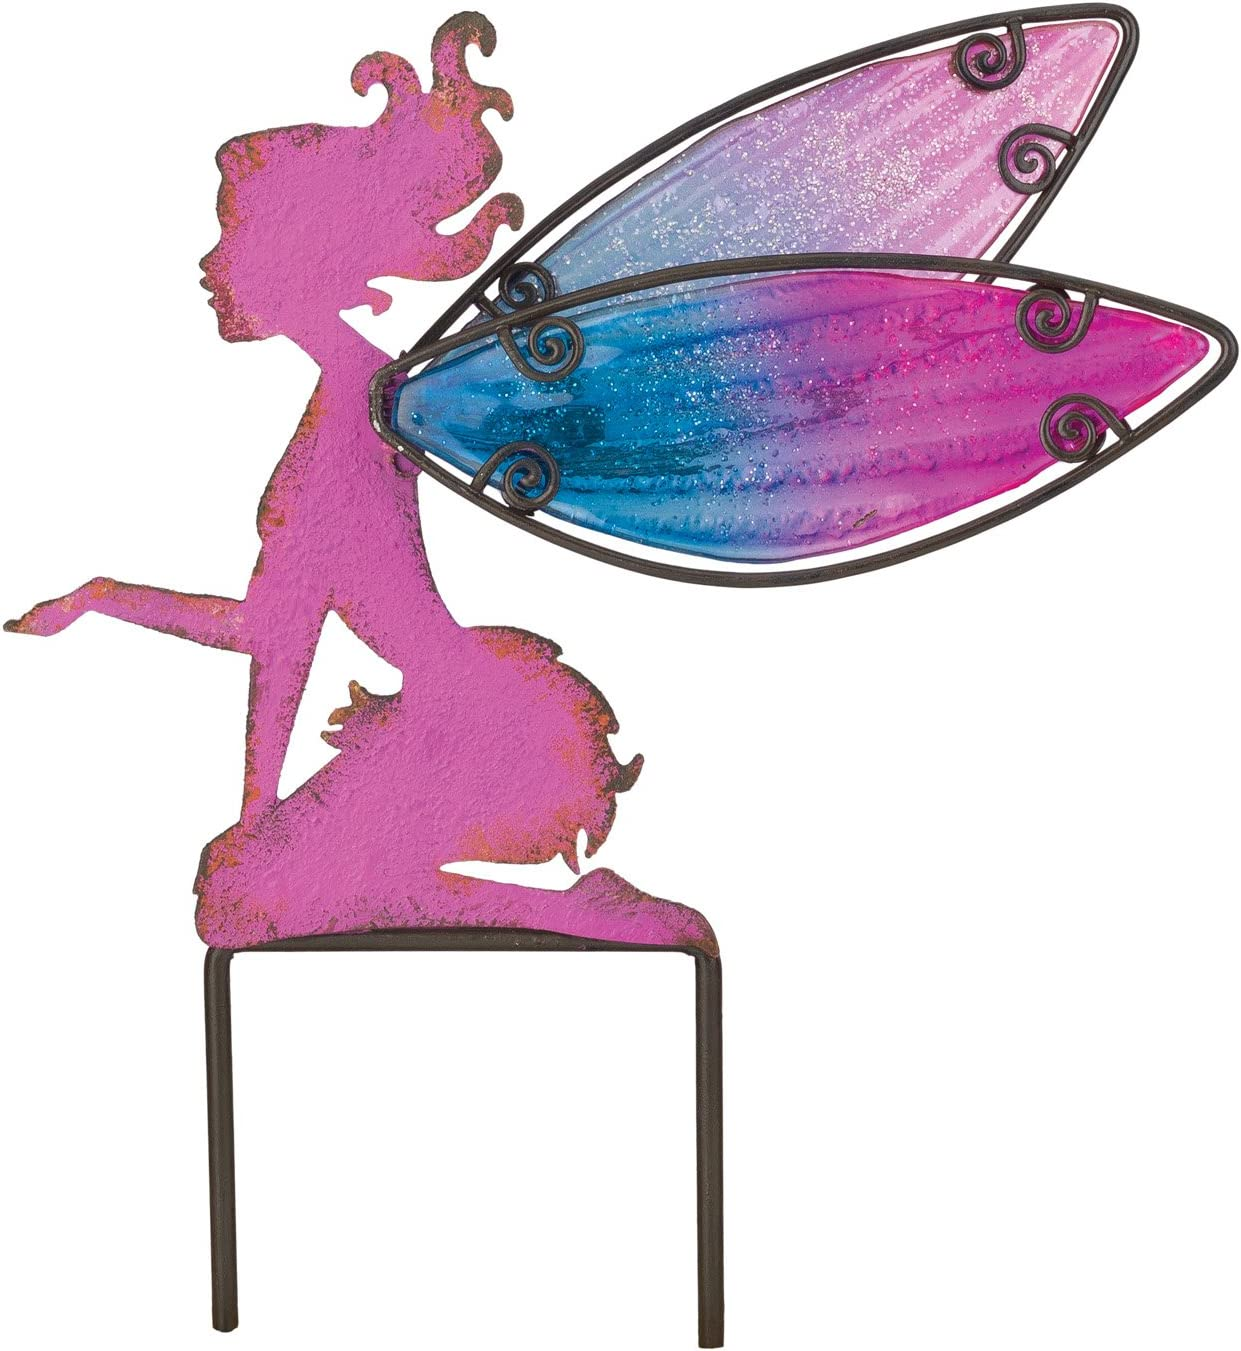 Regal Art Gift Fairy Pink Special price Price reduction Stake Small Garden